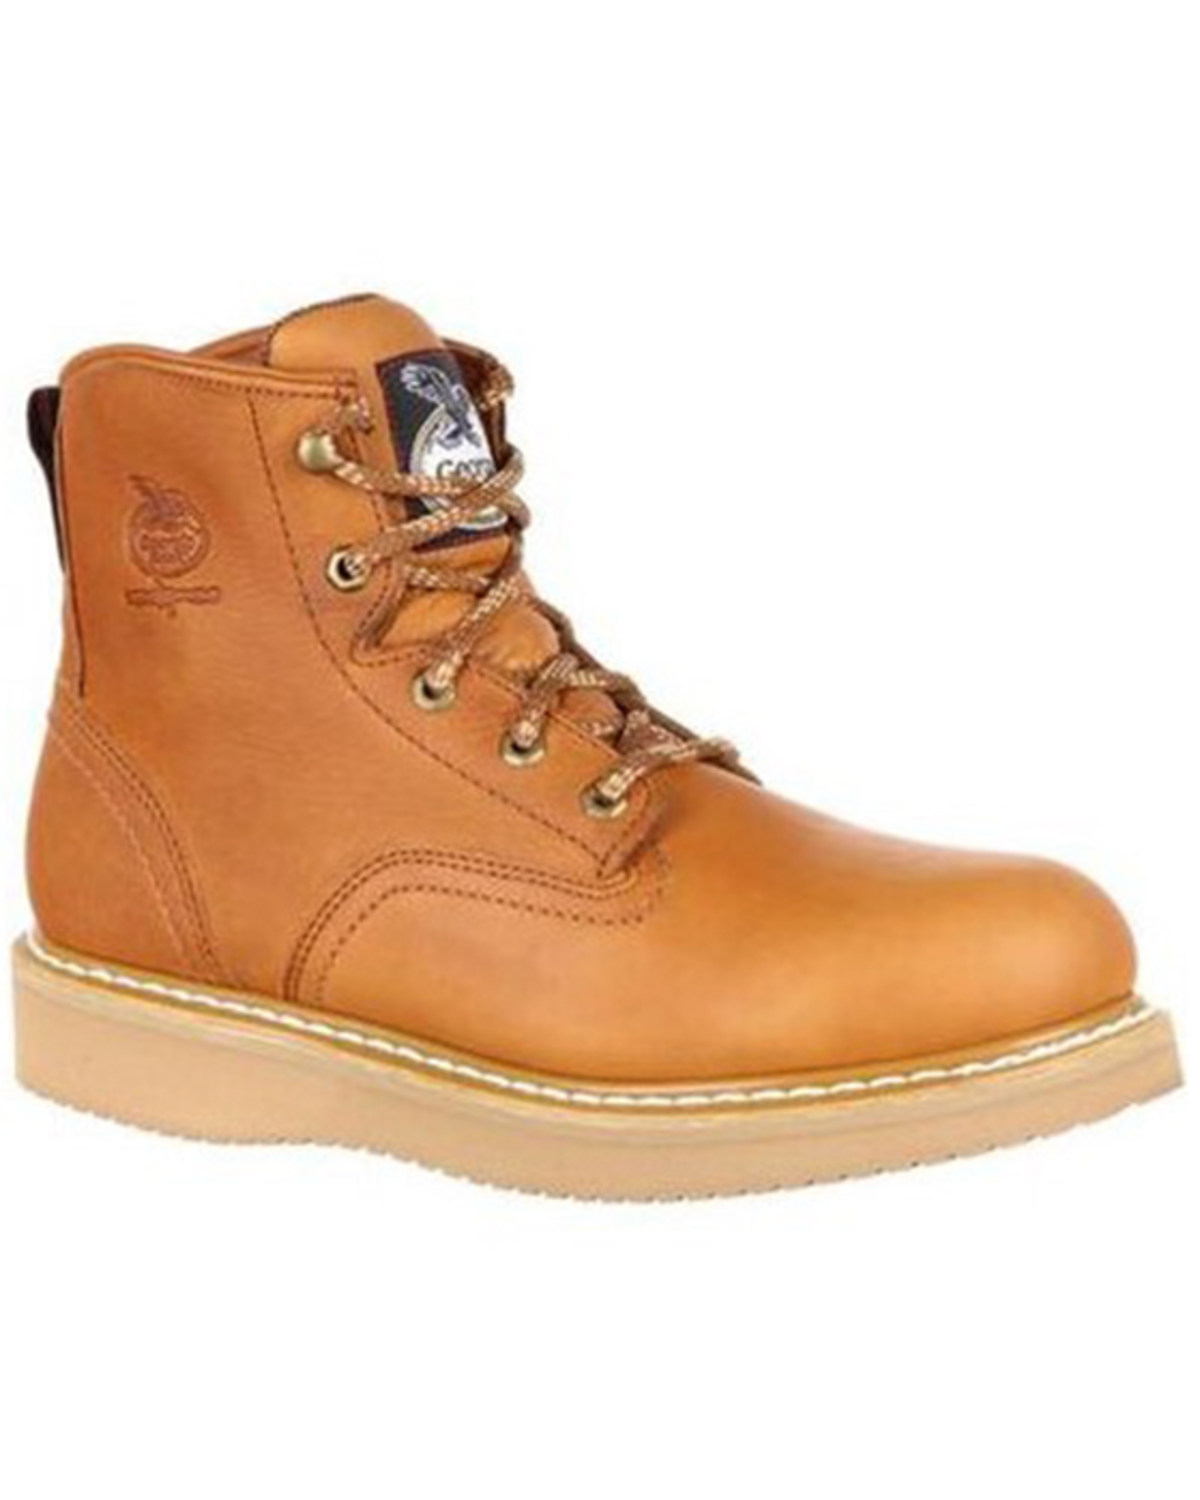 Georgia Men S Wedge Work Boots Boot Barn